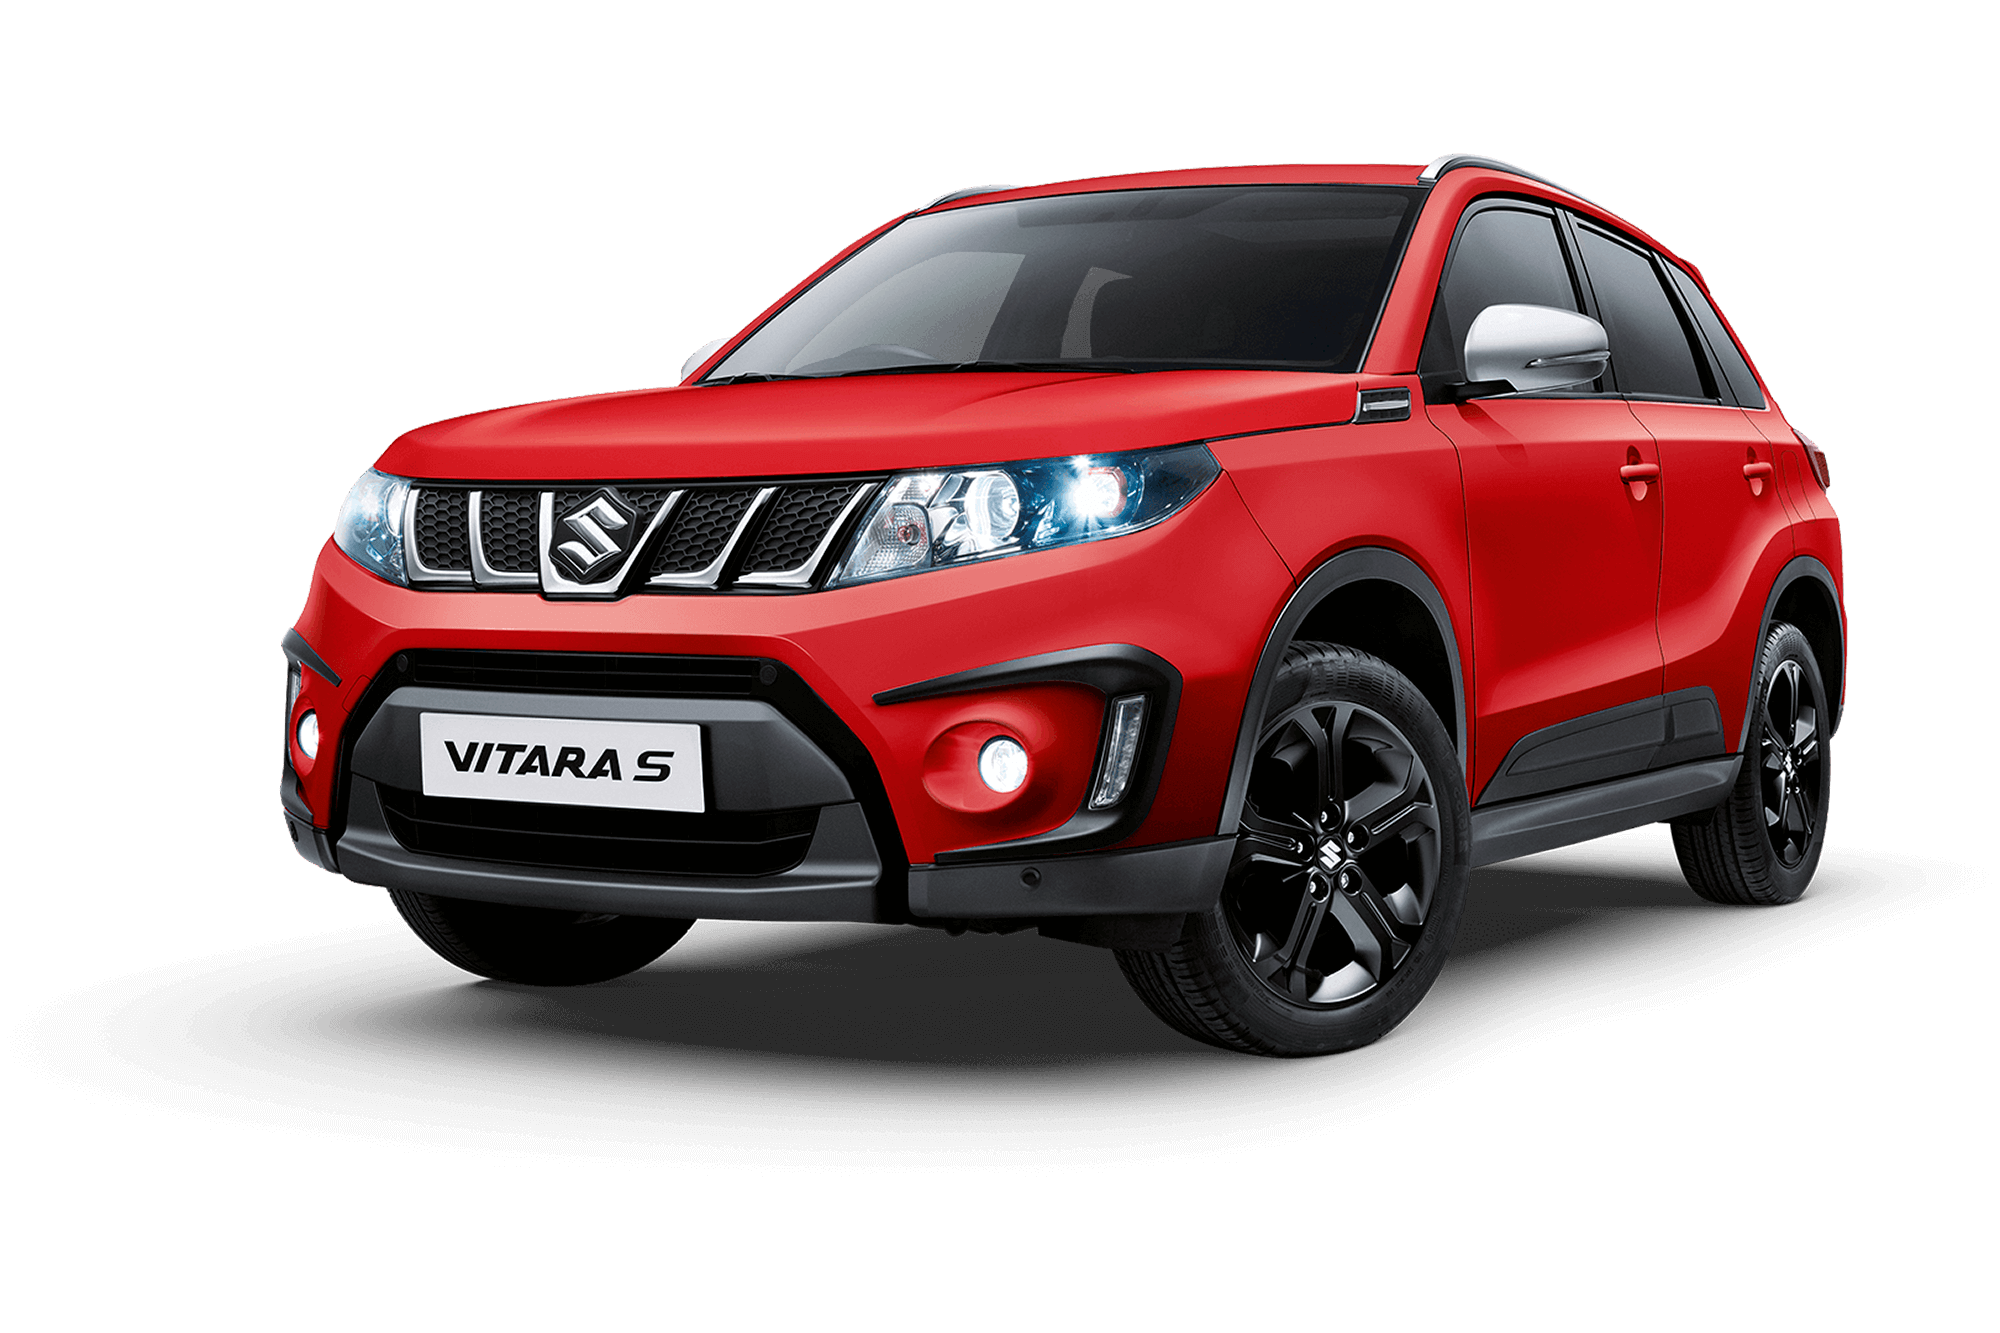 New Suzuki Vitara S The Sporty Addition To The Vitara Range